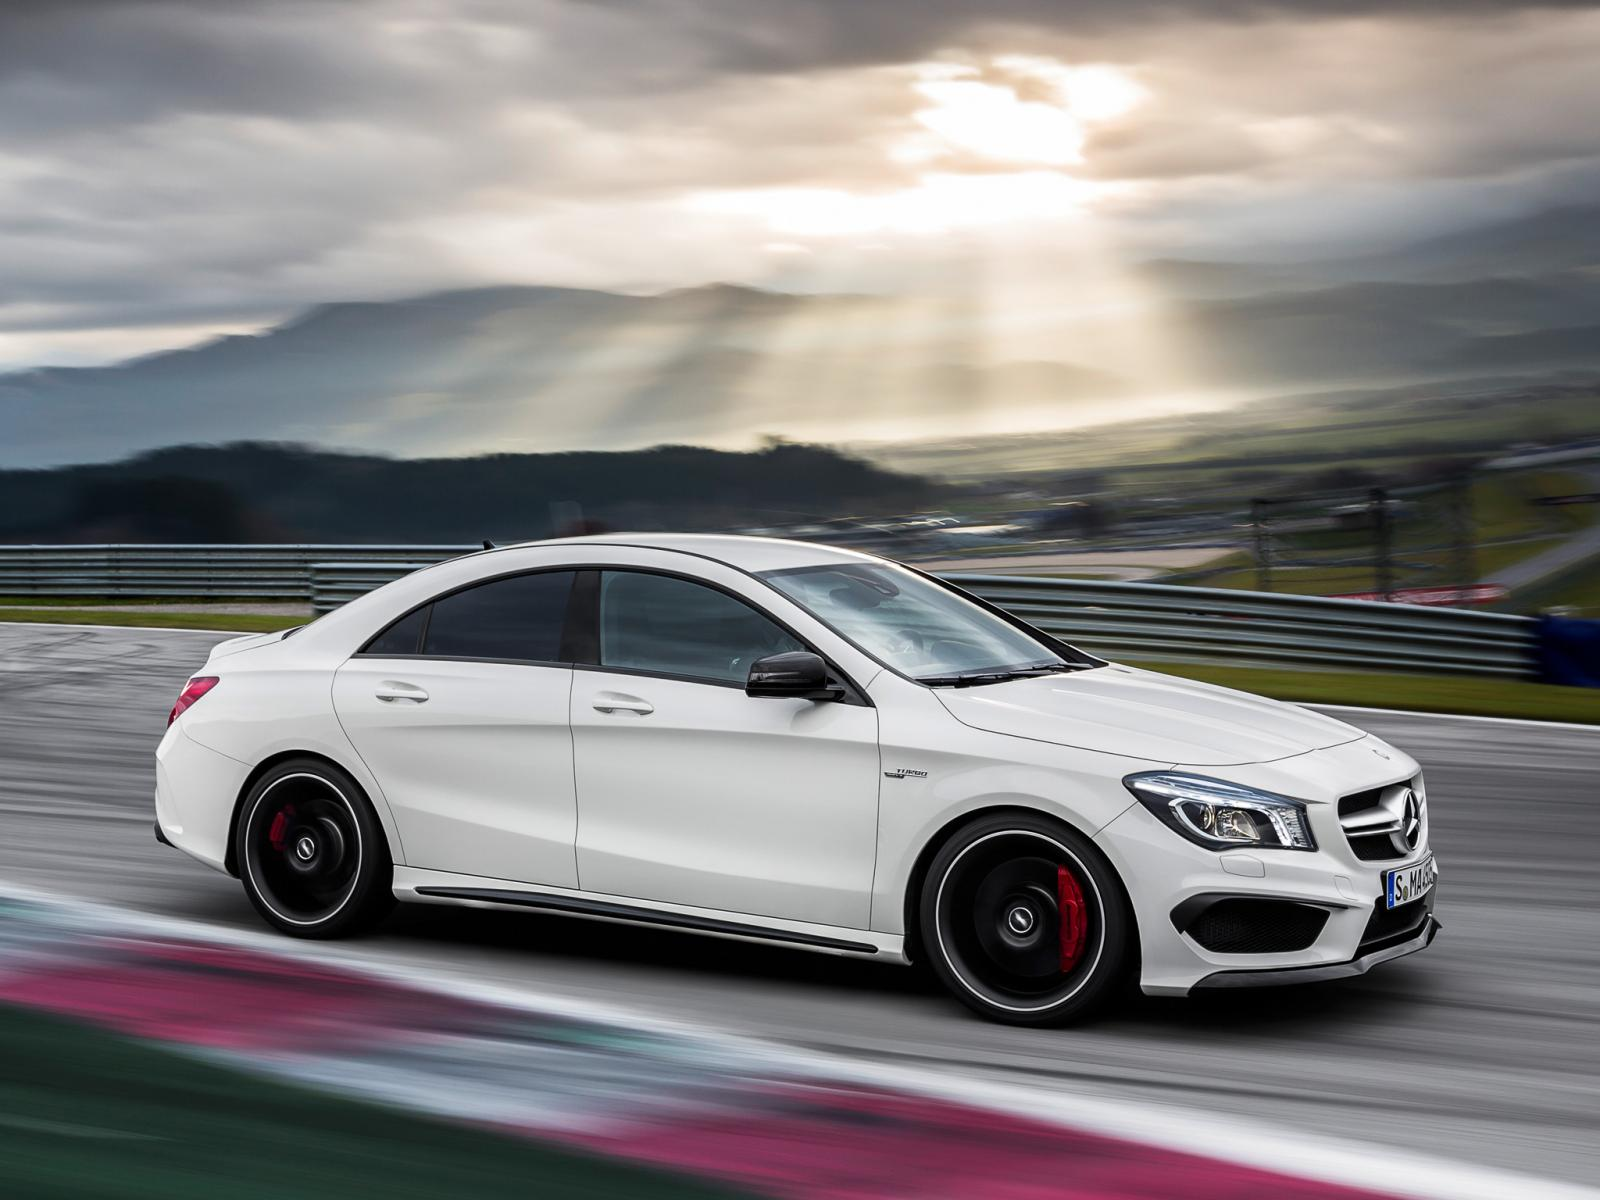 Mercedes benz cla 45 amg revealed ahead of new york debut for Mercedes benz amg cla 45